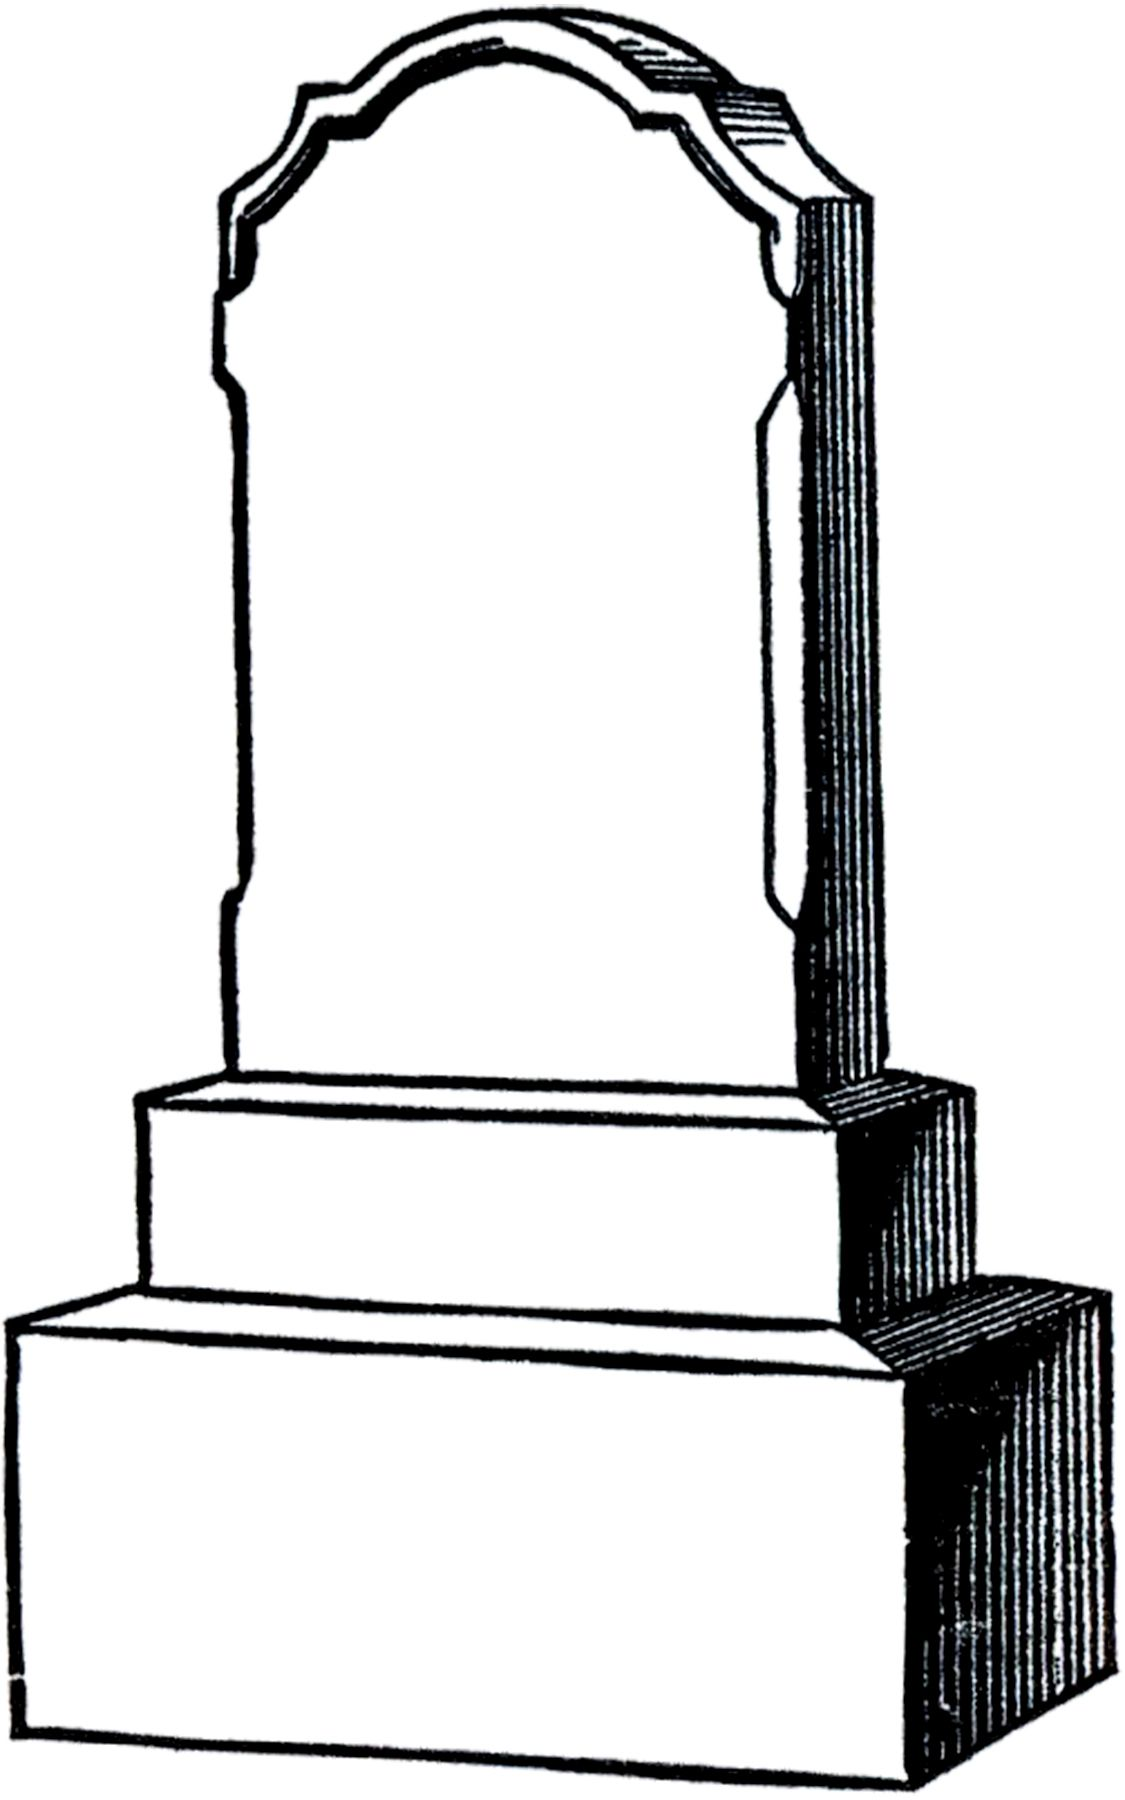 13 Graveyards and Gravestone Clipart.